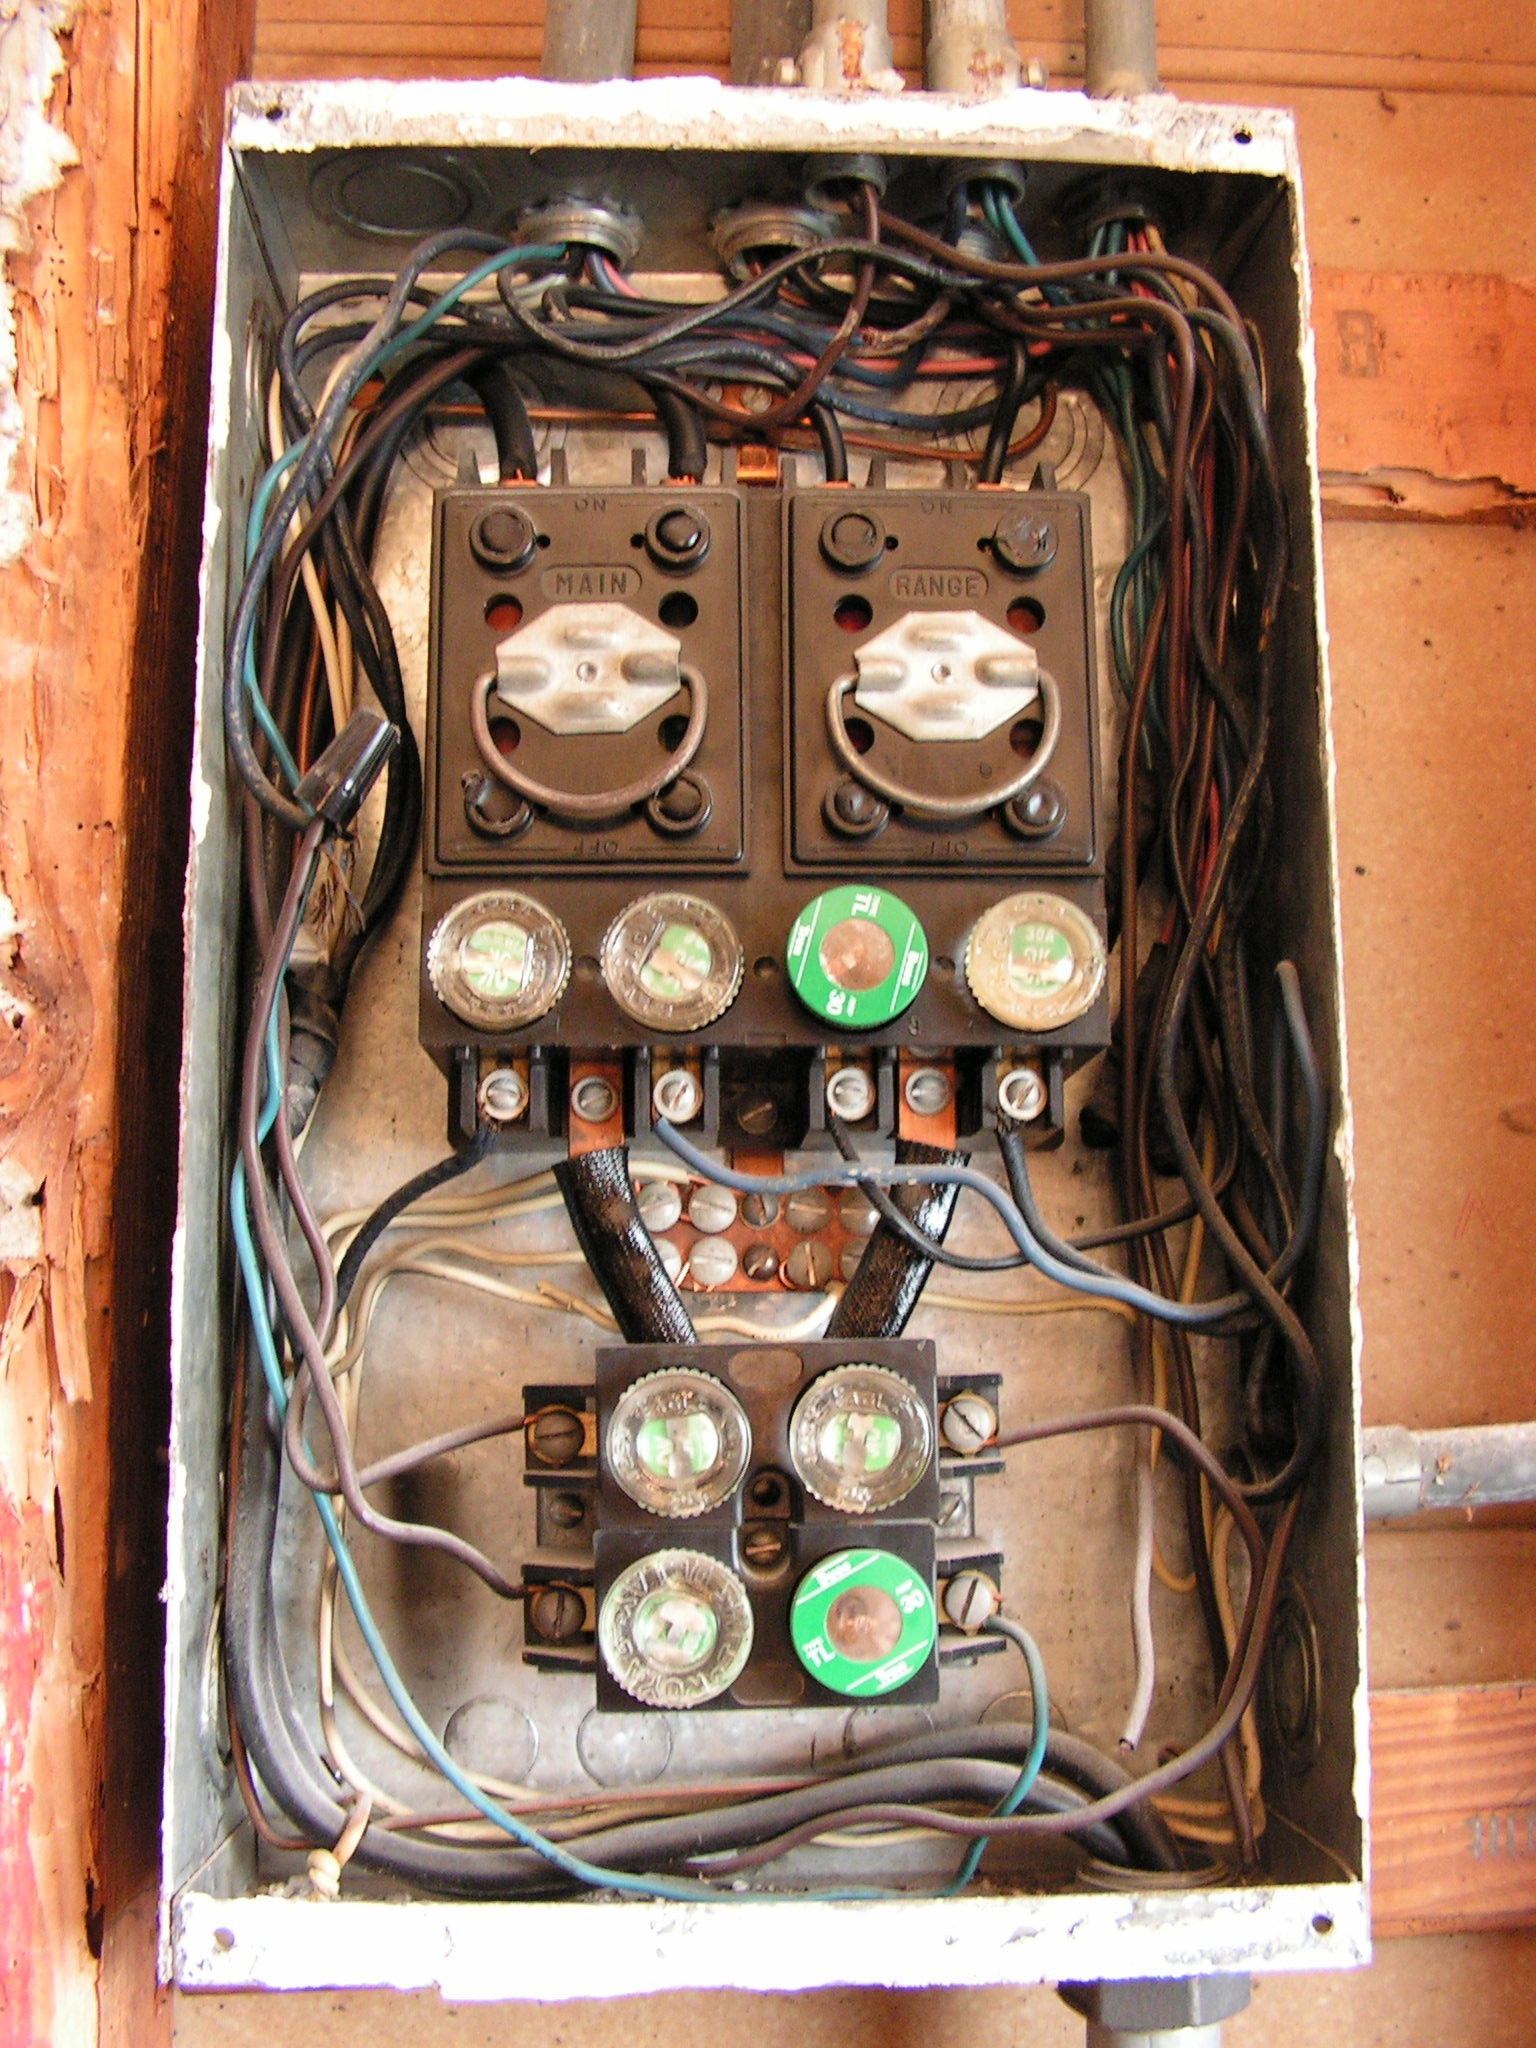 30 Amp Old Fuse Box Auto Electrical Wiring Diagram Sub Panel I Need Advice From An Electrician Who Has Tons Of Experience